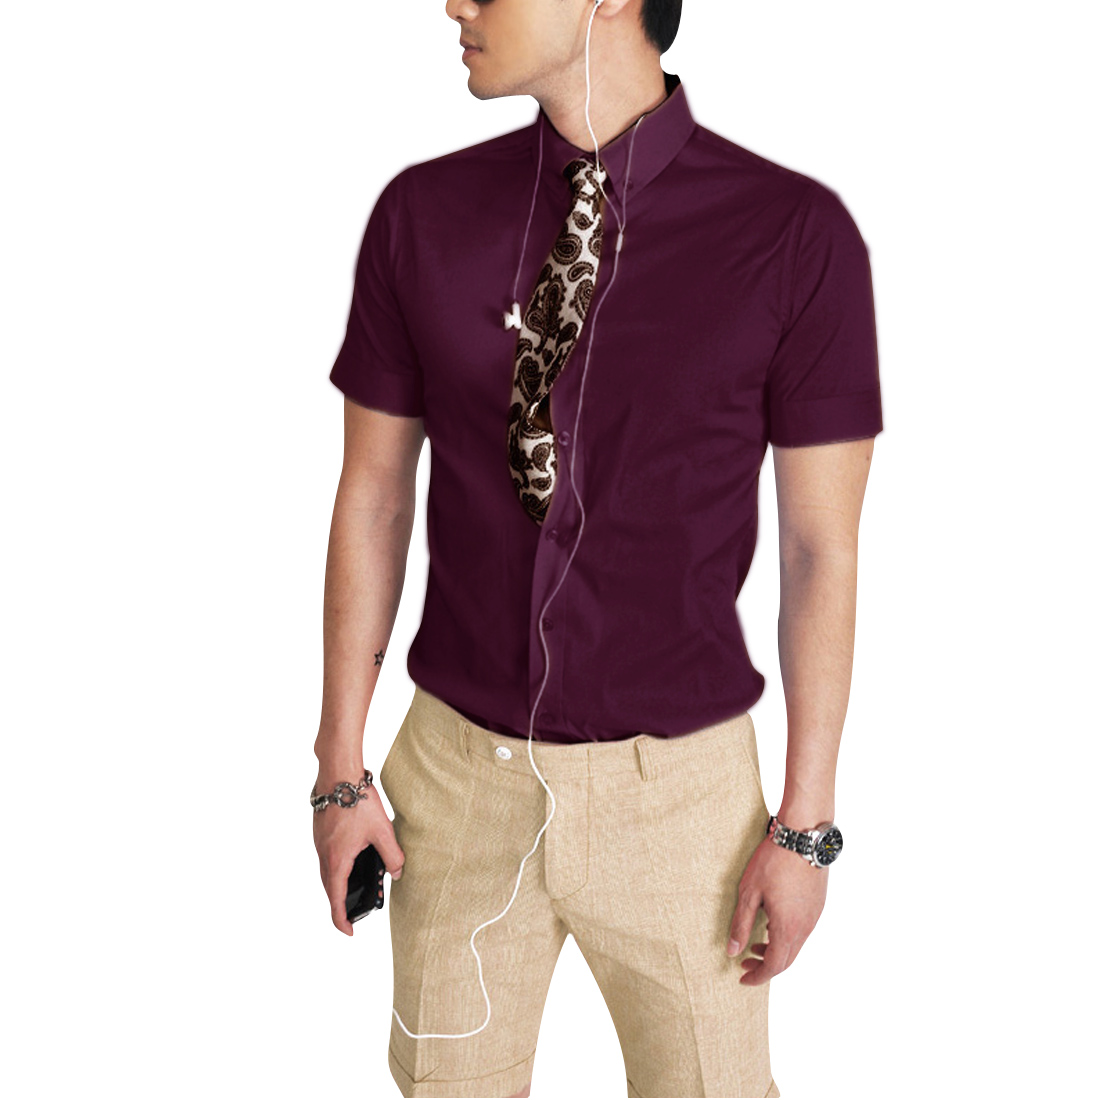 Mens NEW Fashion Wine Red Casual Short Sleeve Summer Korea Shirt Tops S